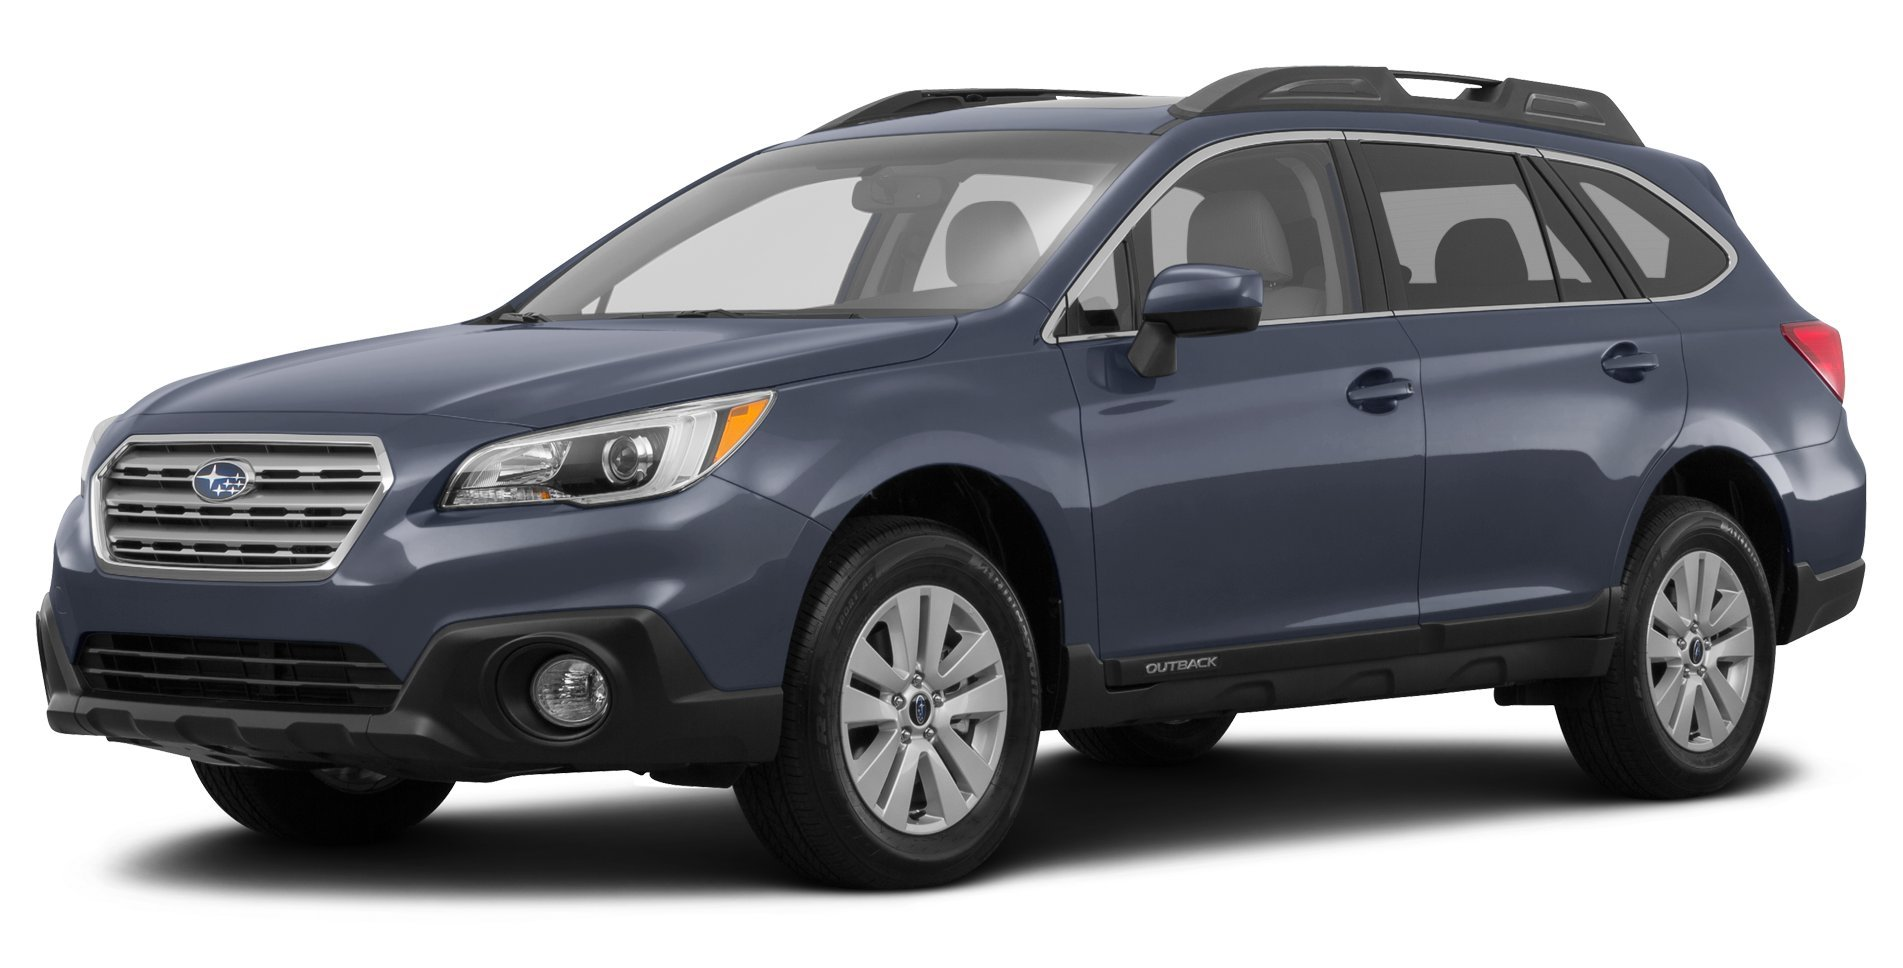 2017 Subaru Outback Reviews Images And Specs Vehicles 1998 Limited 25i